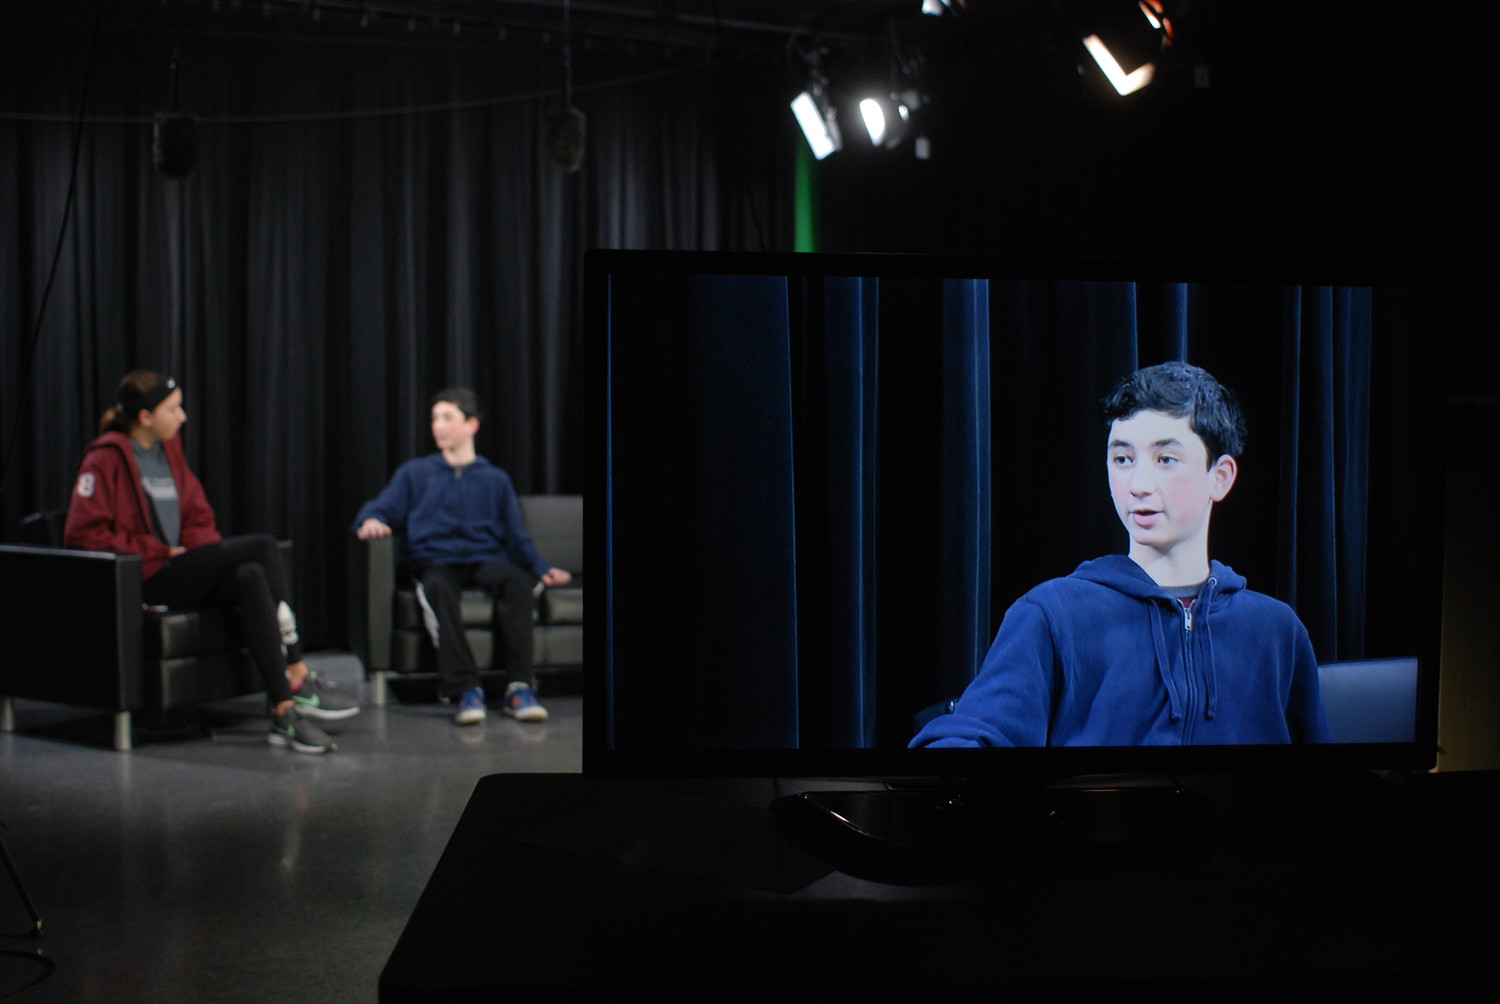 Tenth-grader Spencer Mattes played the role of Gomez during a run-through in preparation for the interview.